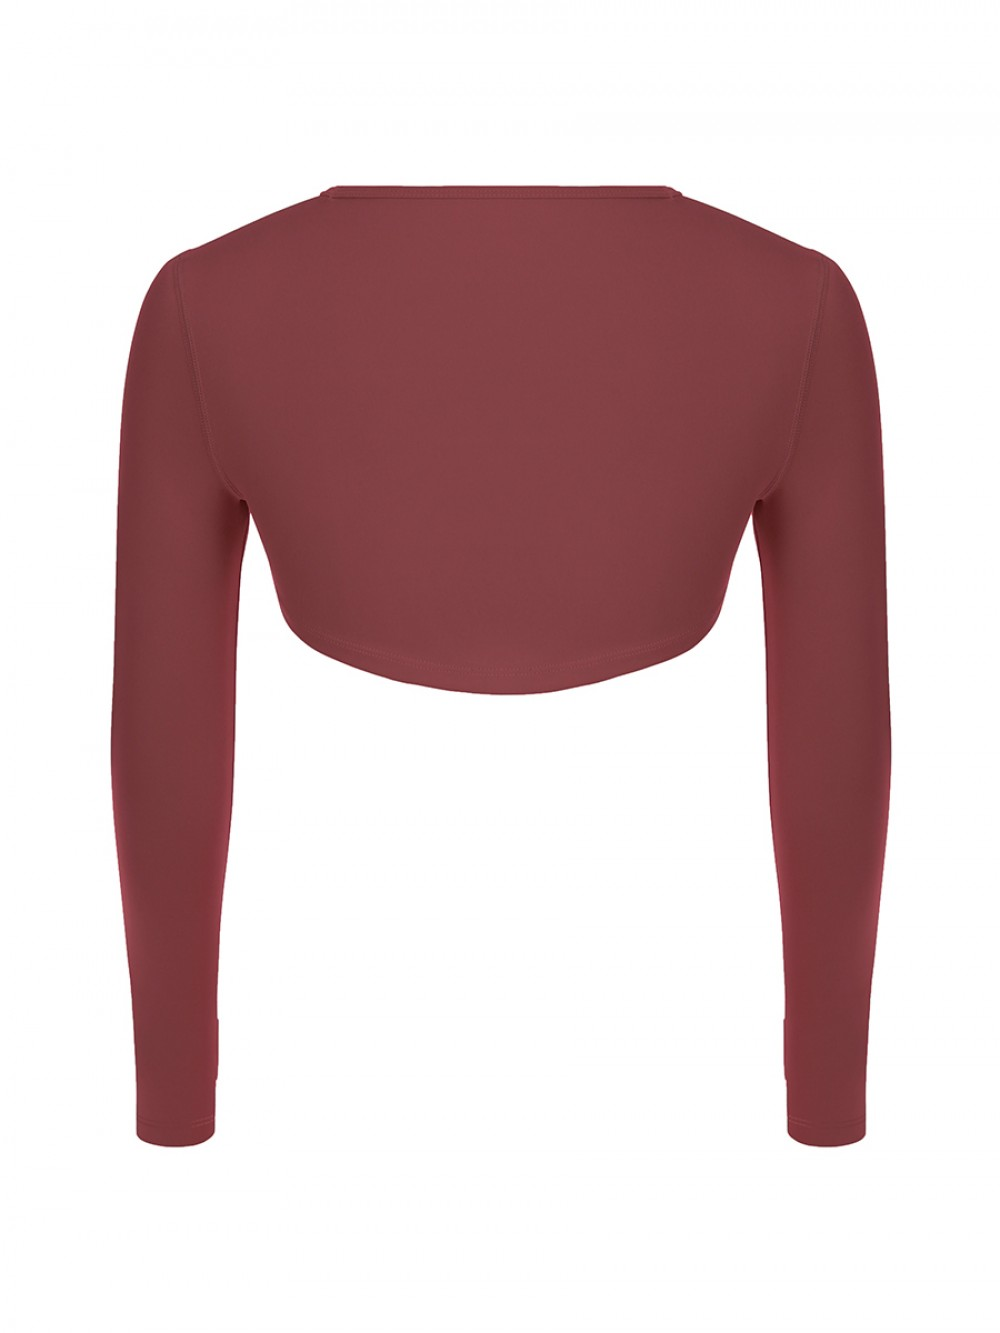 Jujube Red Long Sleeve Running Top Crew Neck For Training